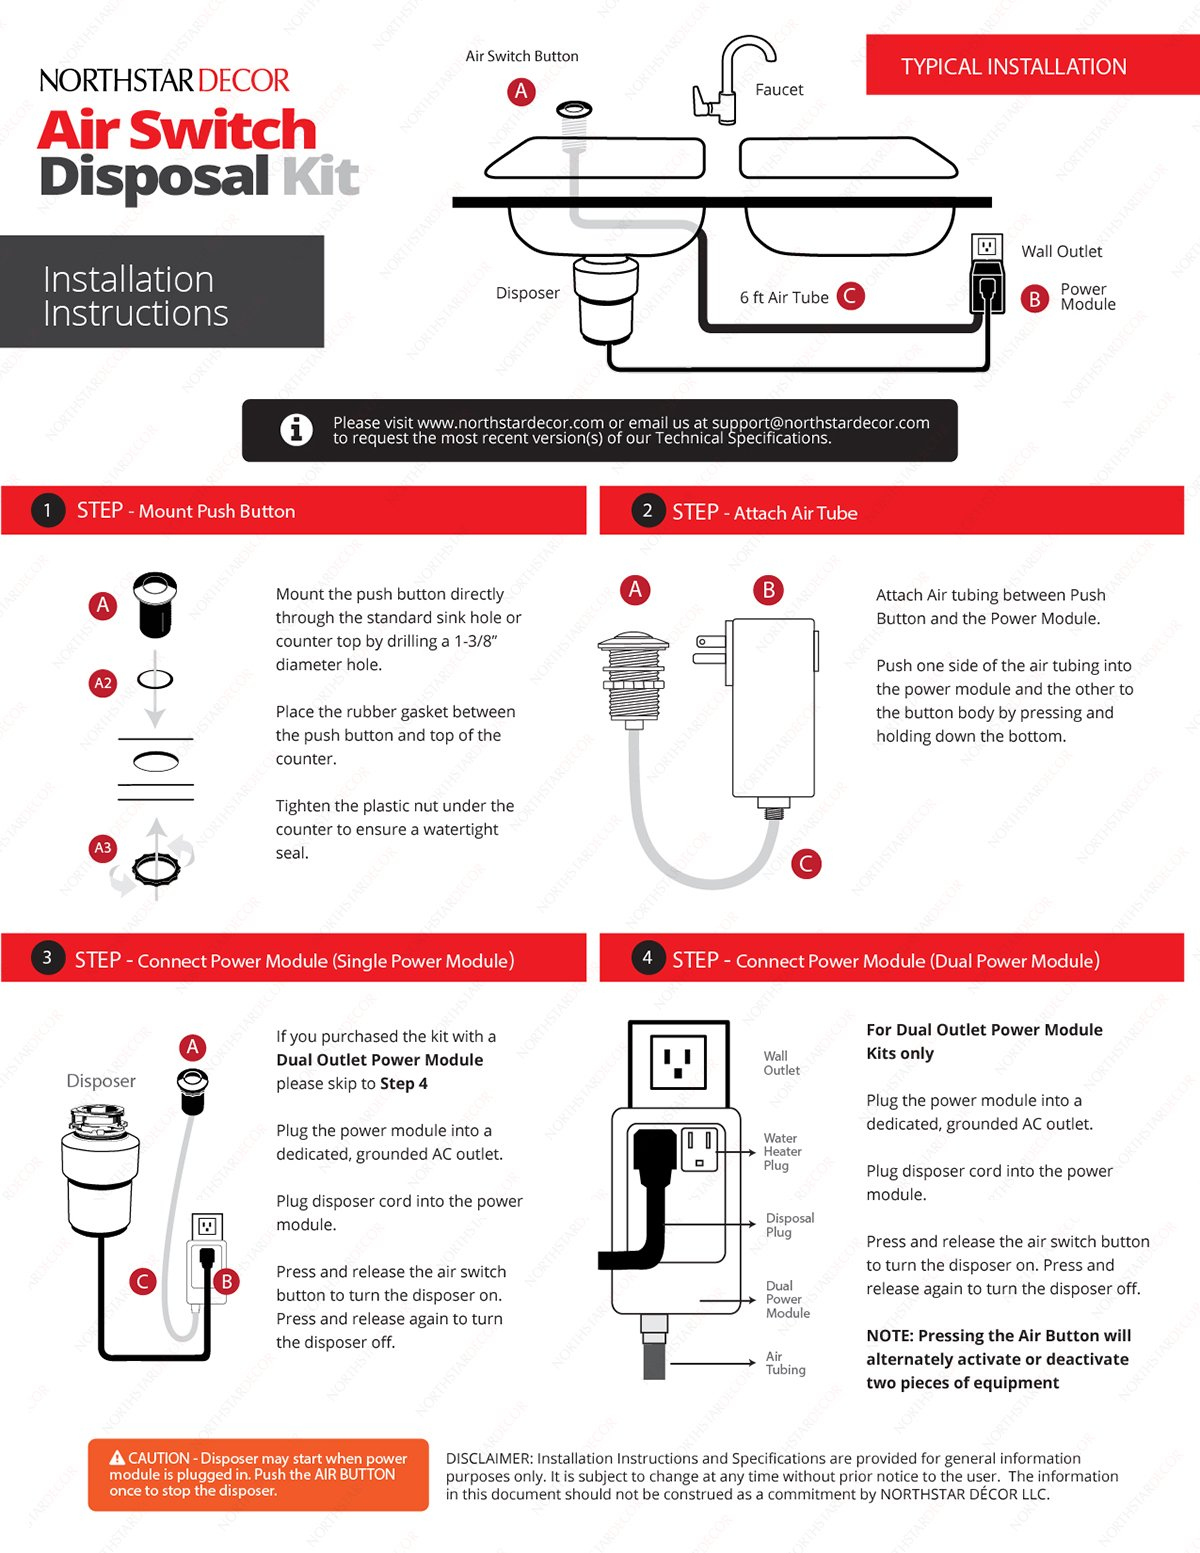 Single Outlet Garbage Disposal Air Switch Power Module with Grounded Outlet. (6 Ft Long Air Tube Included) by NORTHSTAR DECOR ASDA-1 by NORTHSTAR DECOR (Image #4)